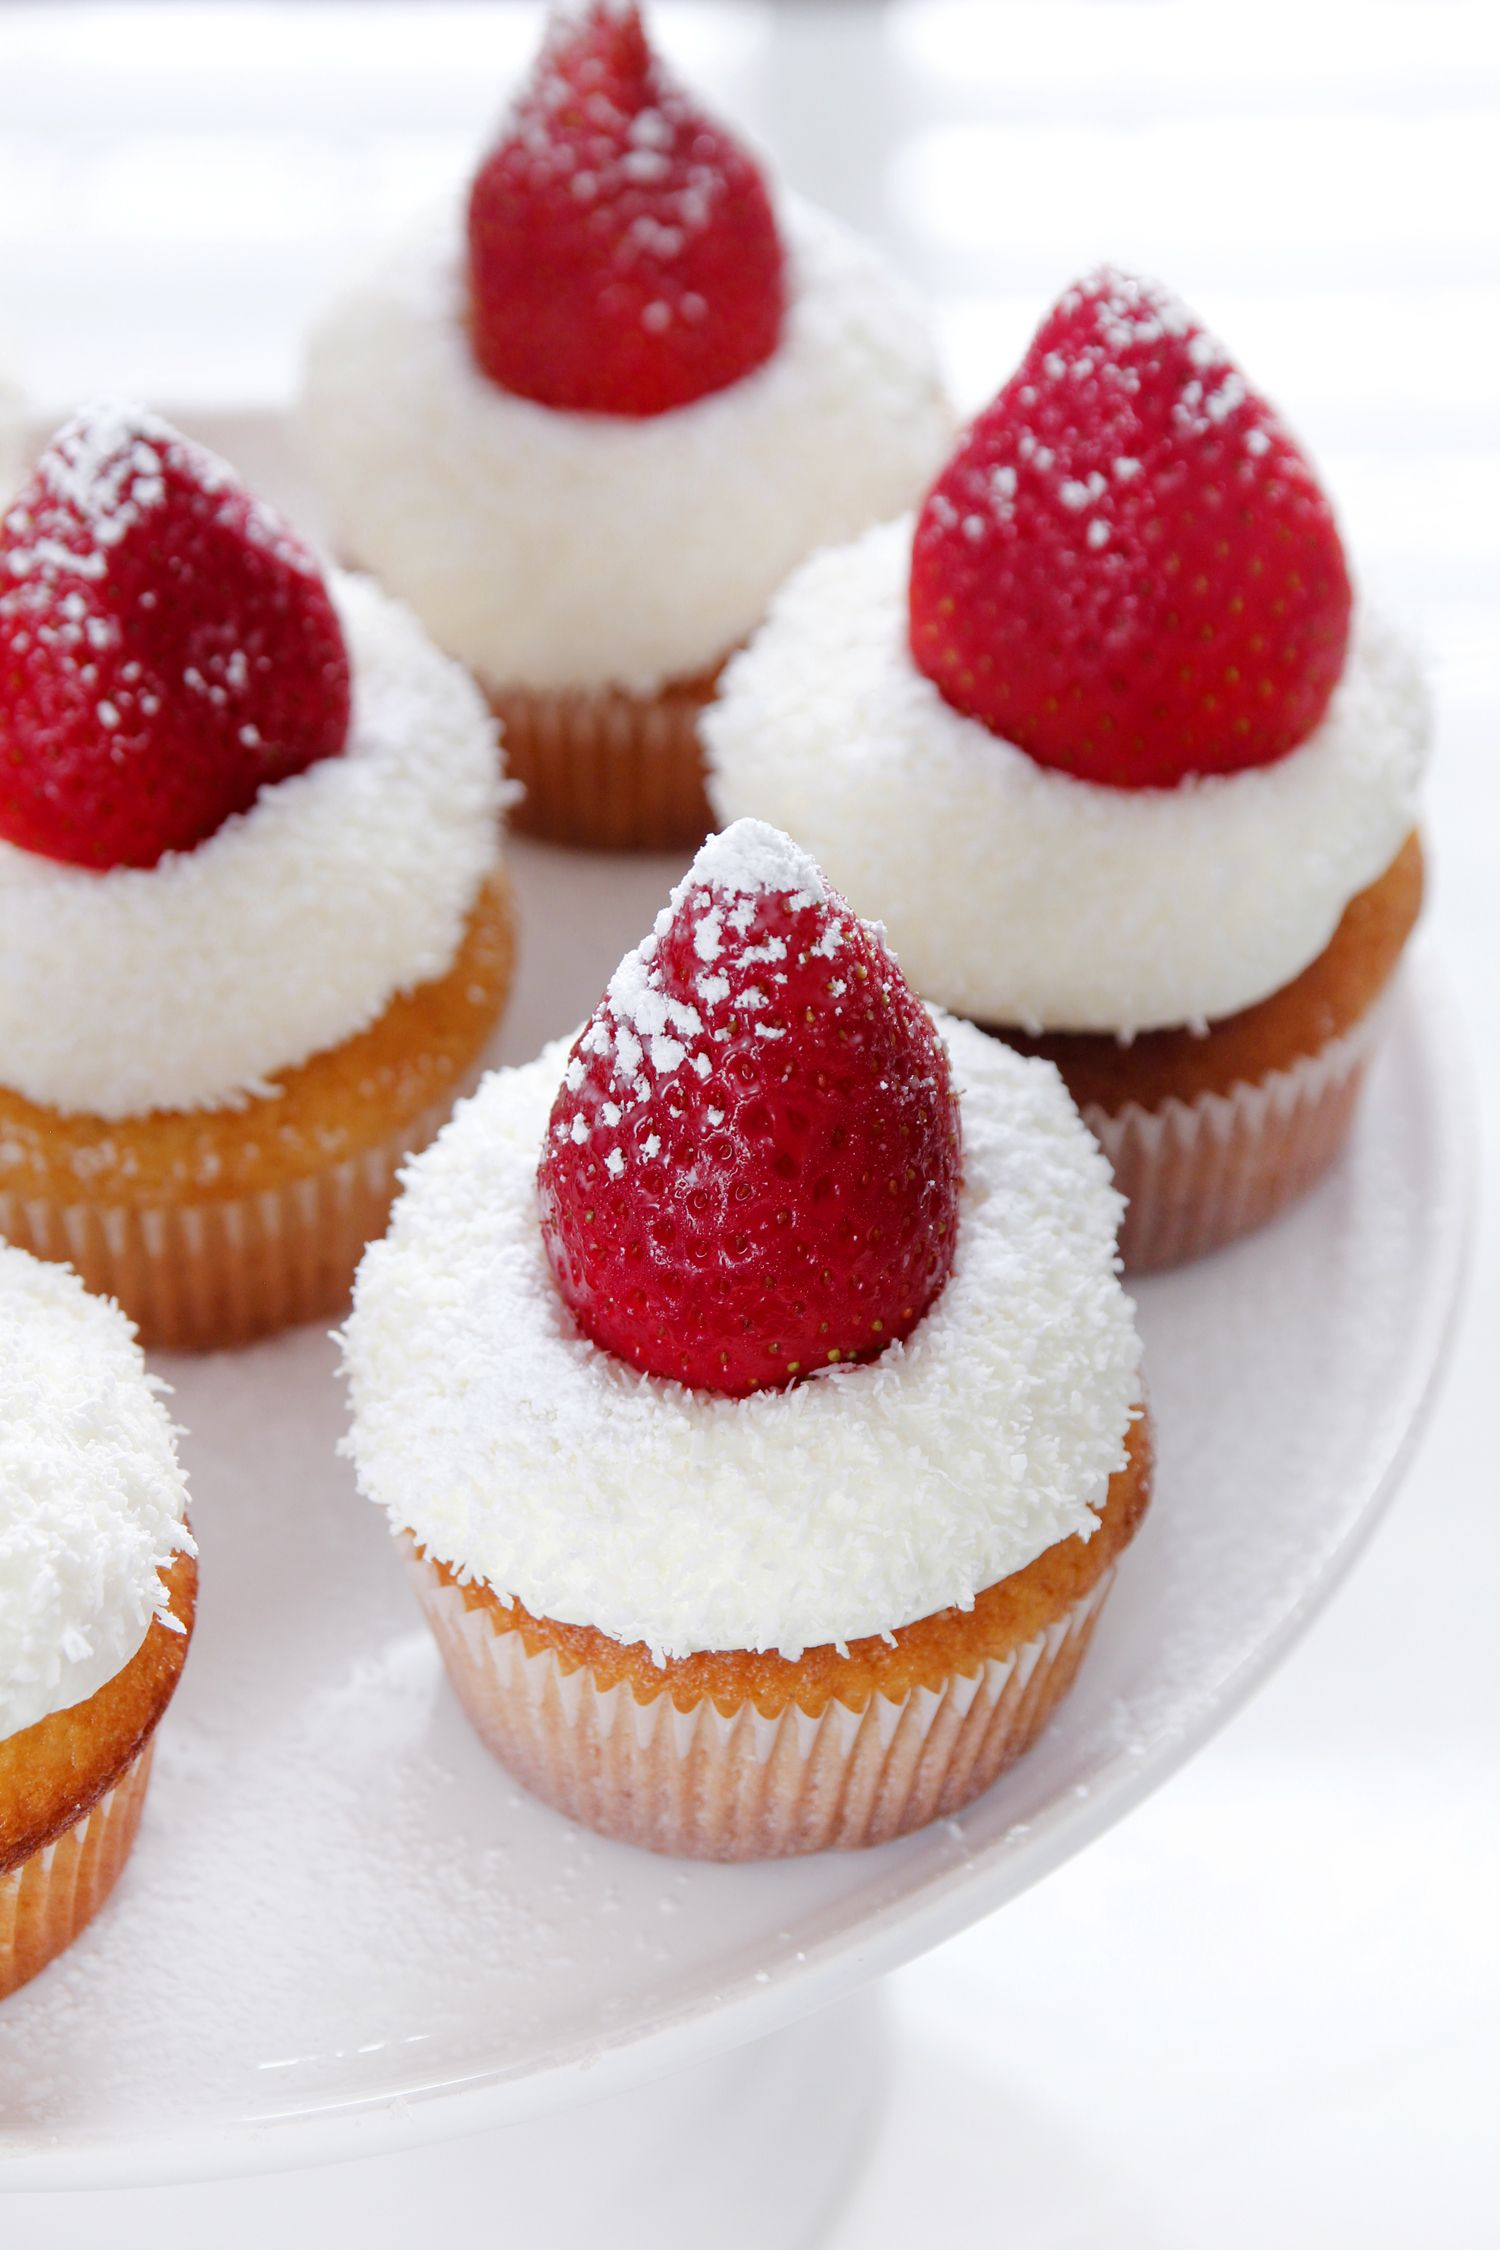 Strawberry Cupcakes with White Chocolate Frosting